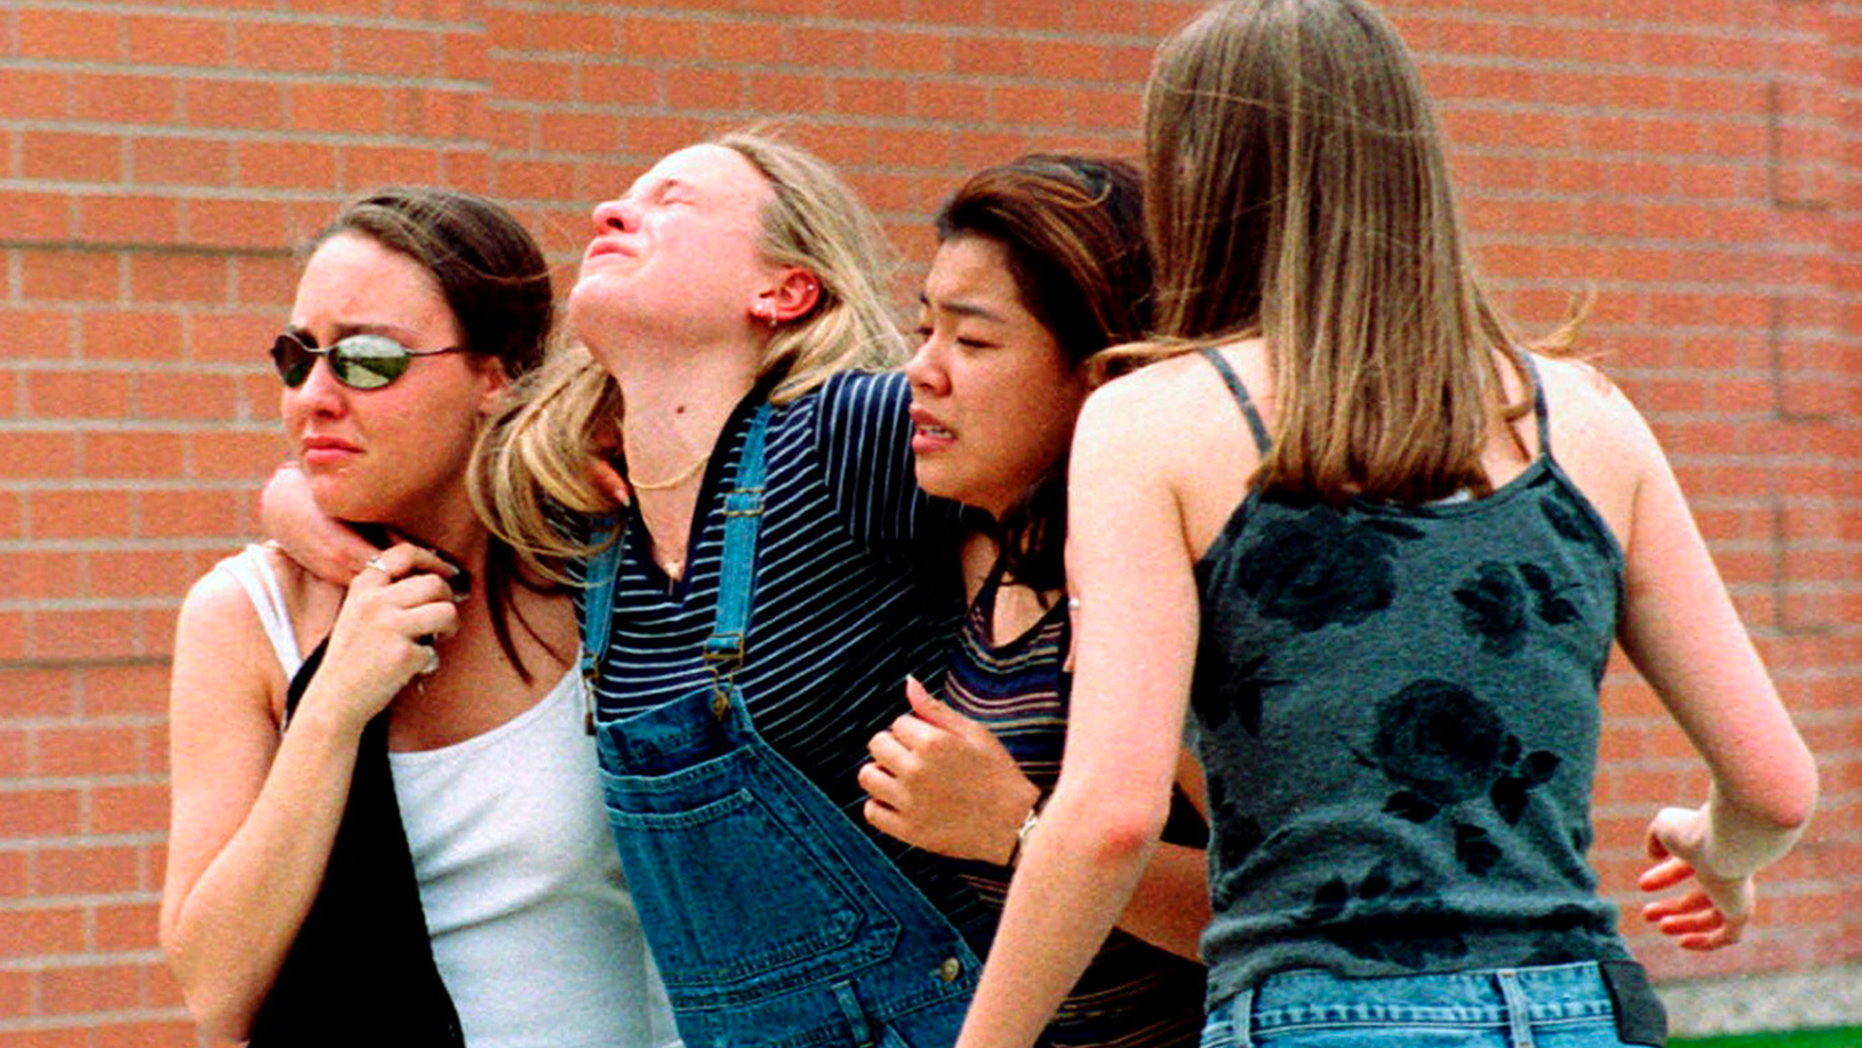 FILE - In this April 20, 1999, file photo, women head to a library near Columbine High School where students and faculty members were evacuated after two gunmen went on a shooting rampage in the school in the Denver suburb of Littleton, Colo. Twelve students and one teacher were killed in a murderous rampage at the school on April 20, 1999, by two students who killed themselves in the aftermath. (AP Photo/Kevin Higley, File)